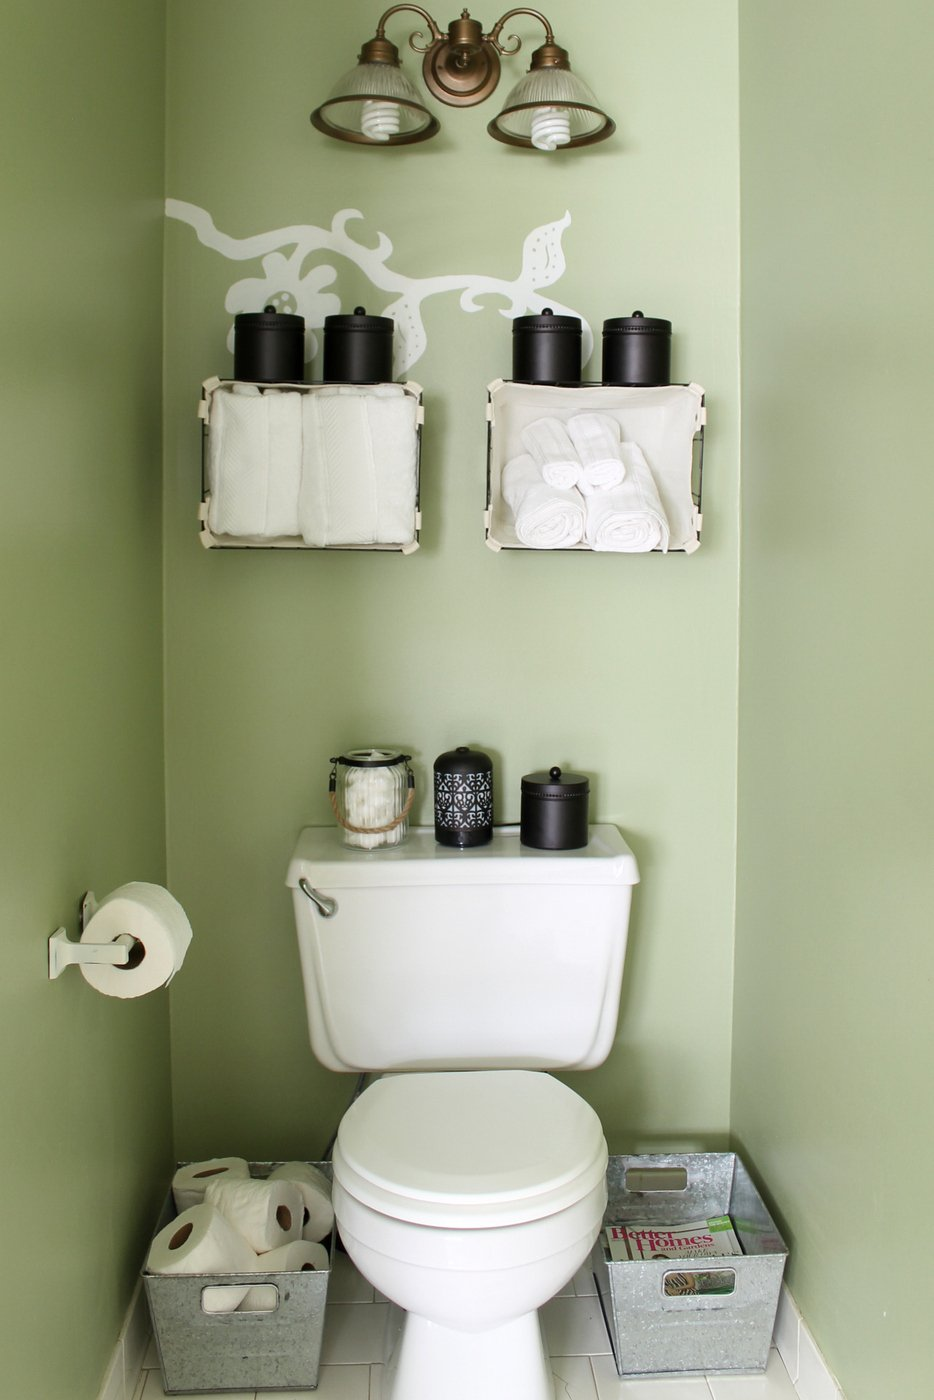 Small bathroom organization ideas the country chic cottage Tips for small bathrooms